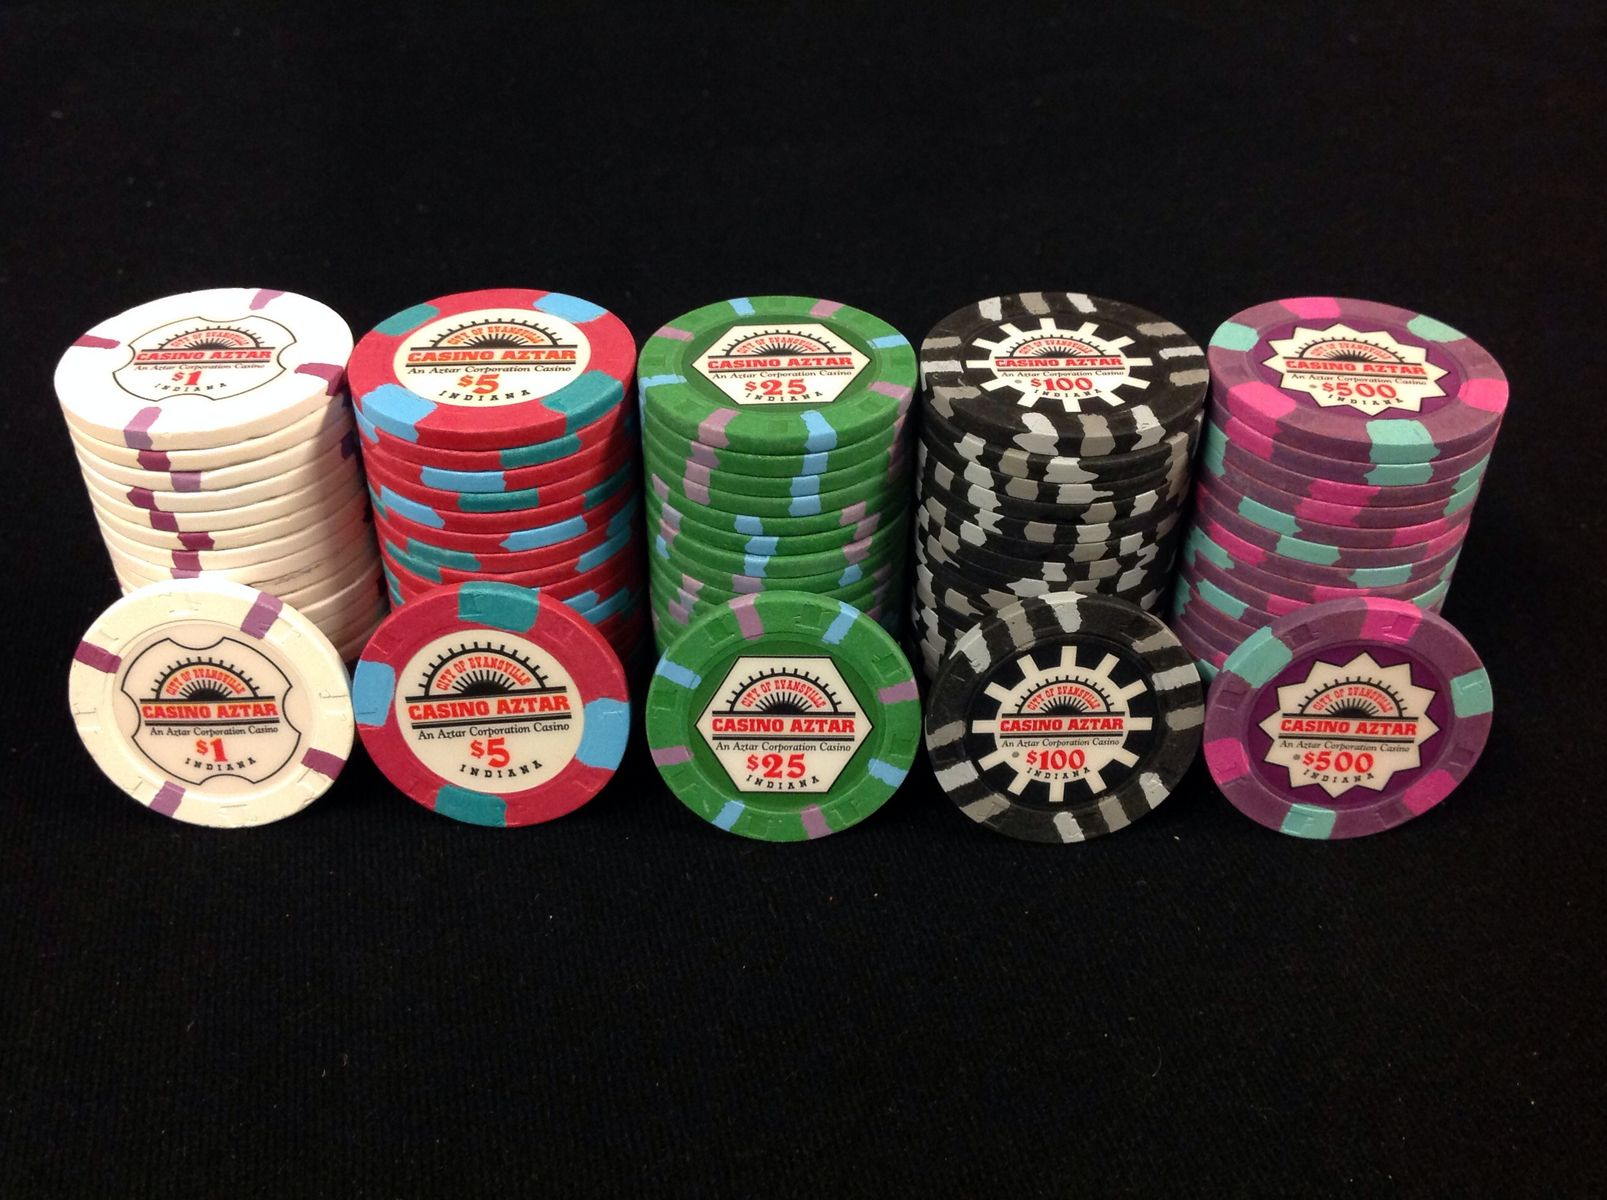 Casino aztar poker chips britney spears photos purchase by online casino